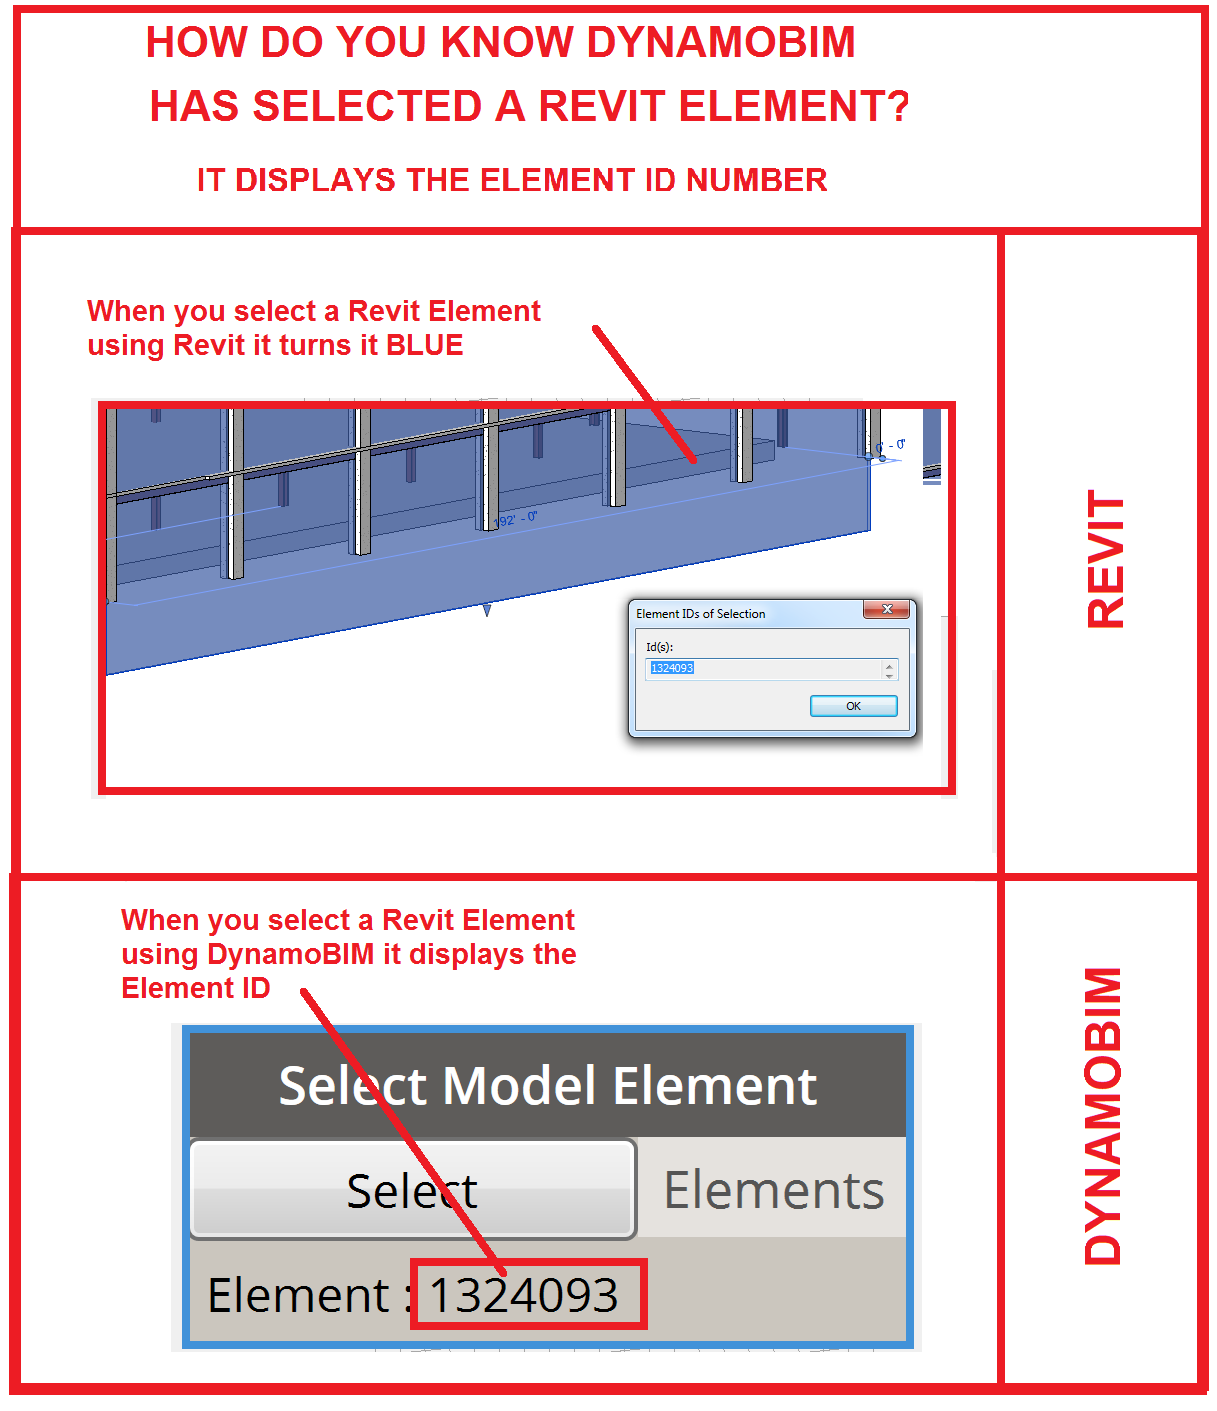 How do you know you selected a Revit Element using DynamoBIM?